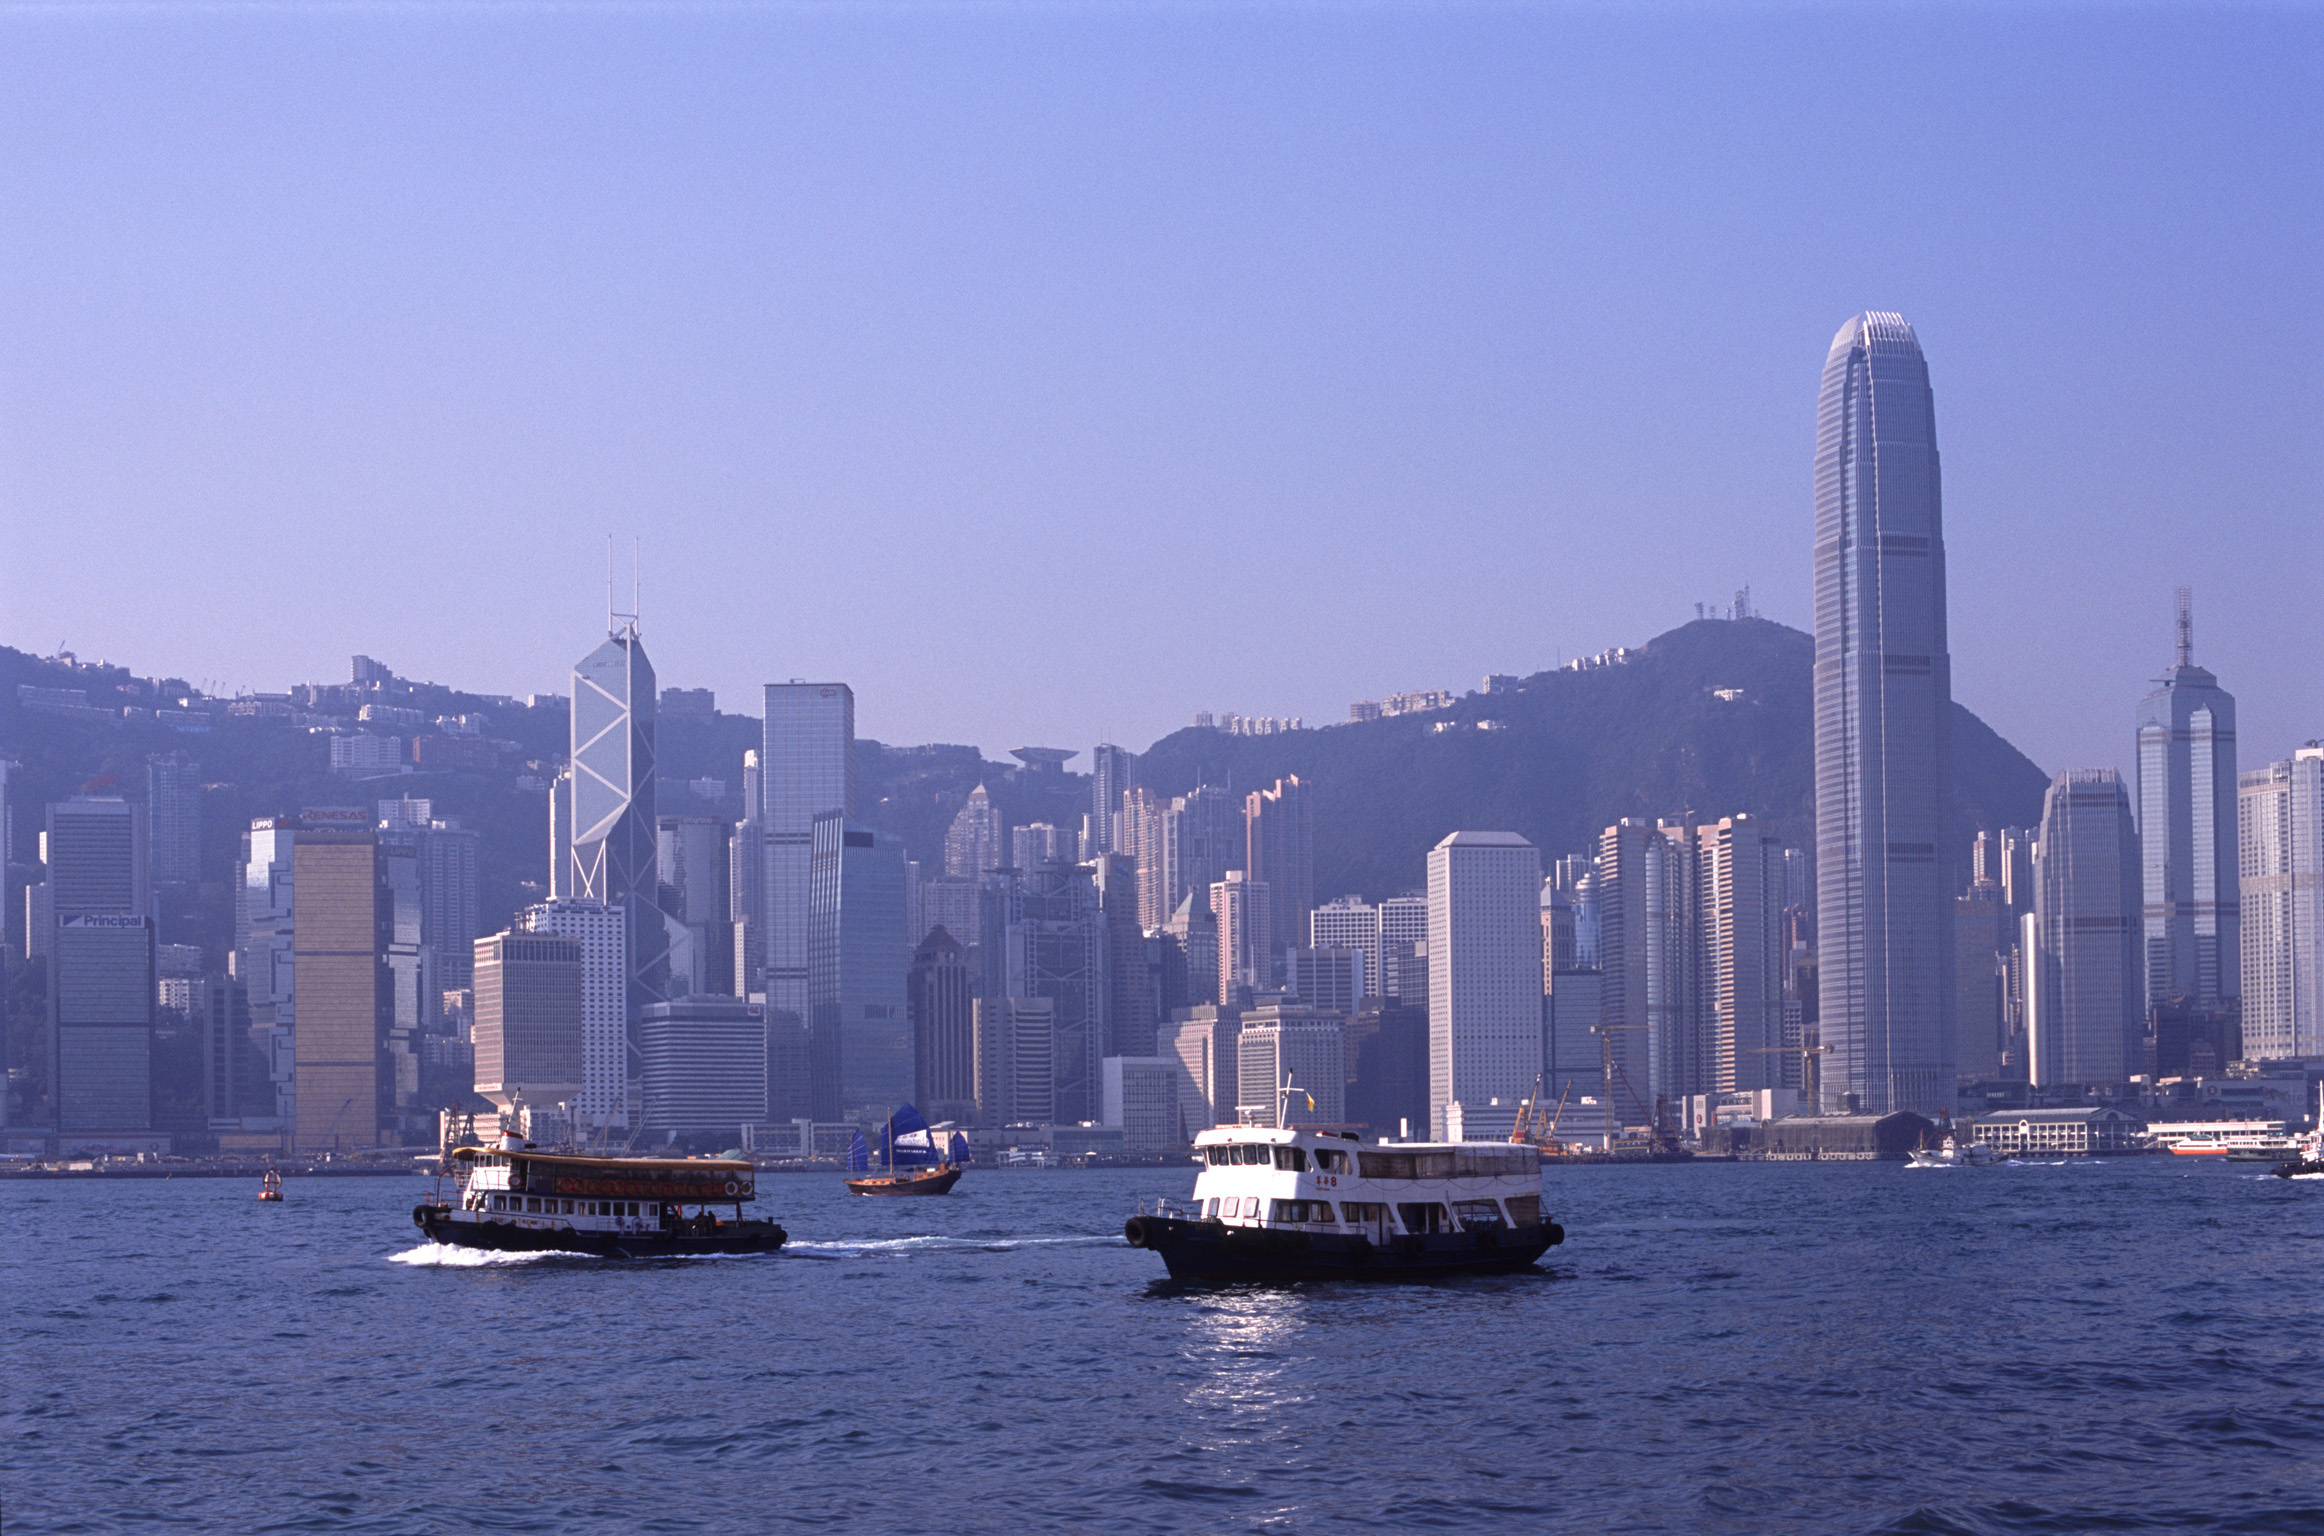 Star Ferry in Victoria Harbor with Hong Kong Skyline, China